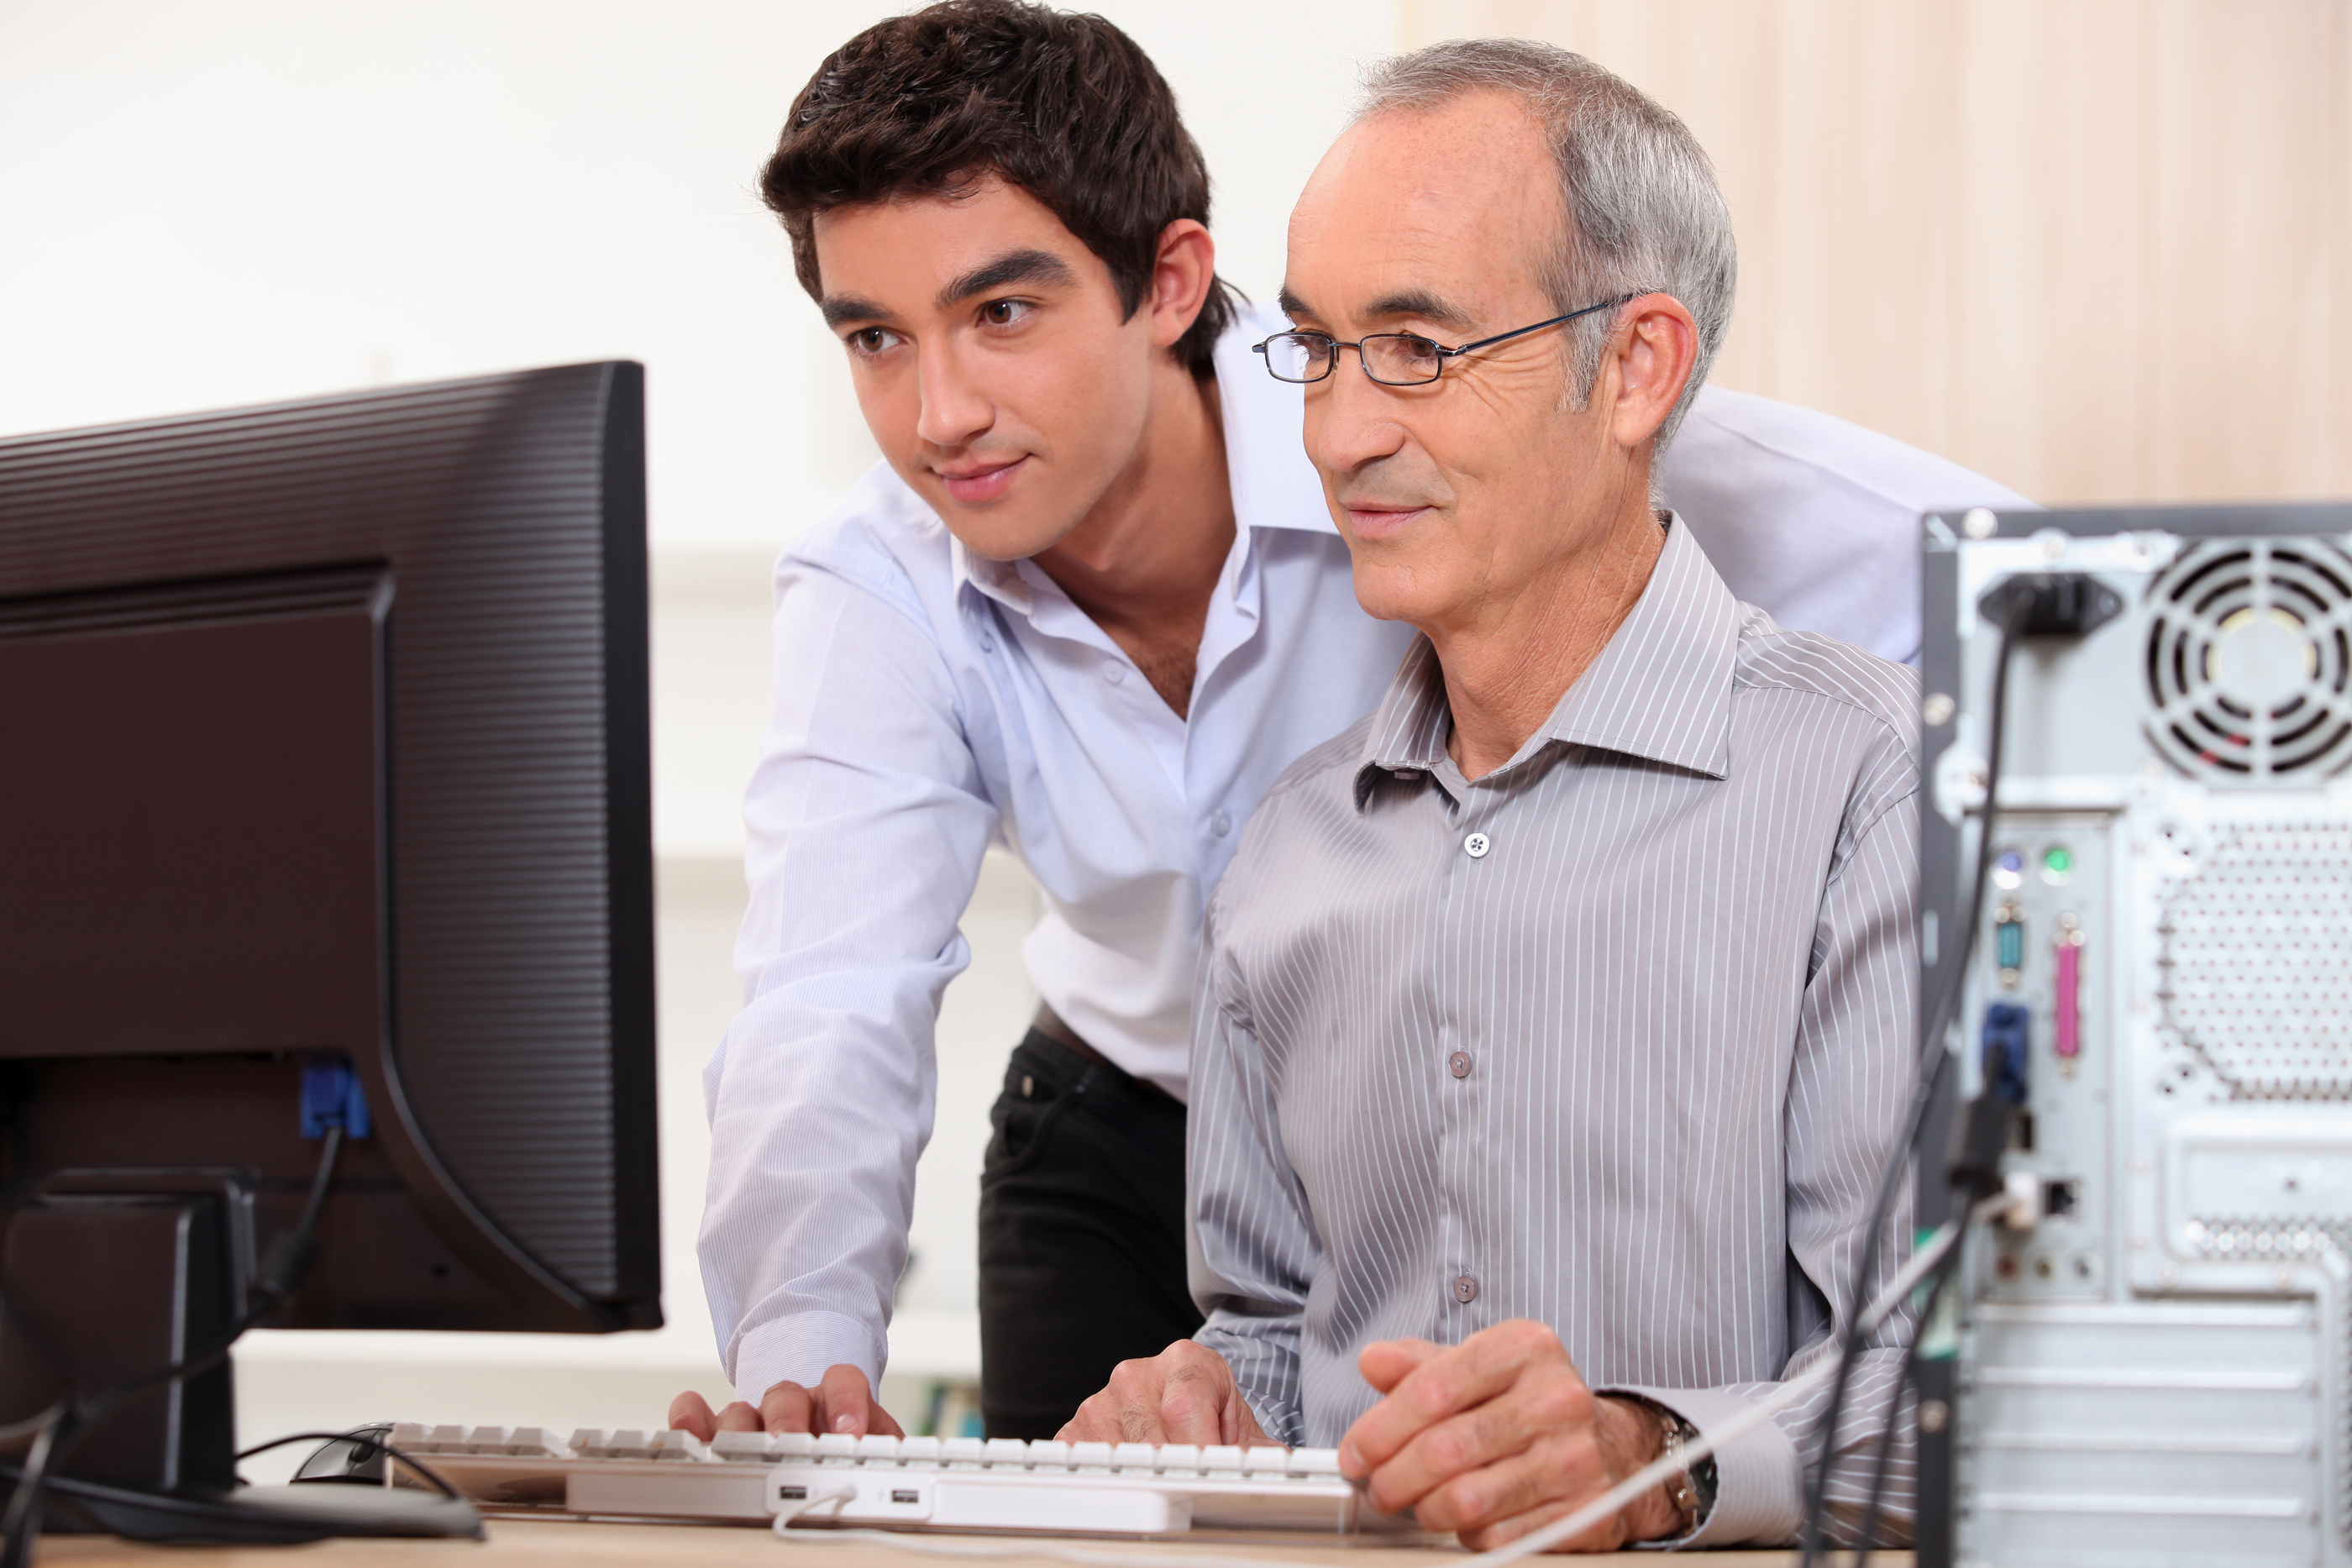 4 Reasons It's Critical to Work with an IT Provider that Knows Your Industry